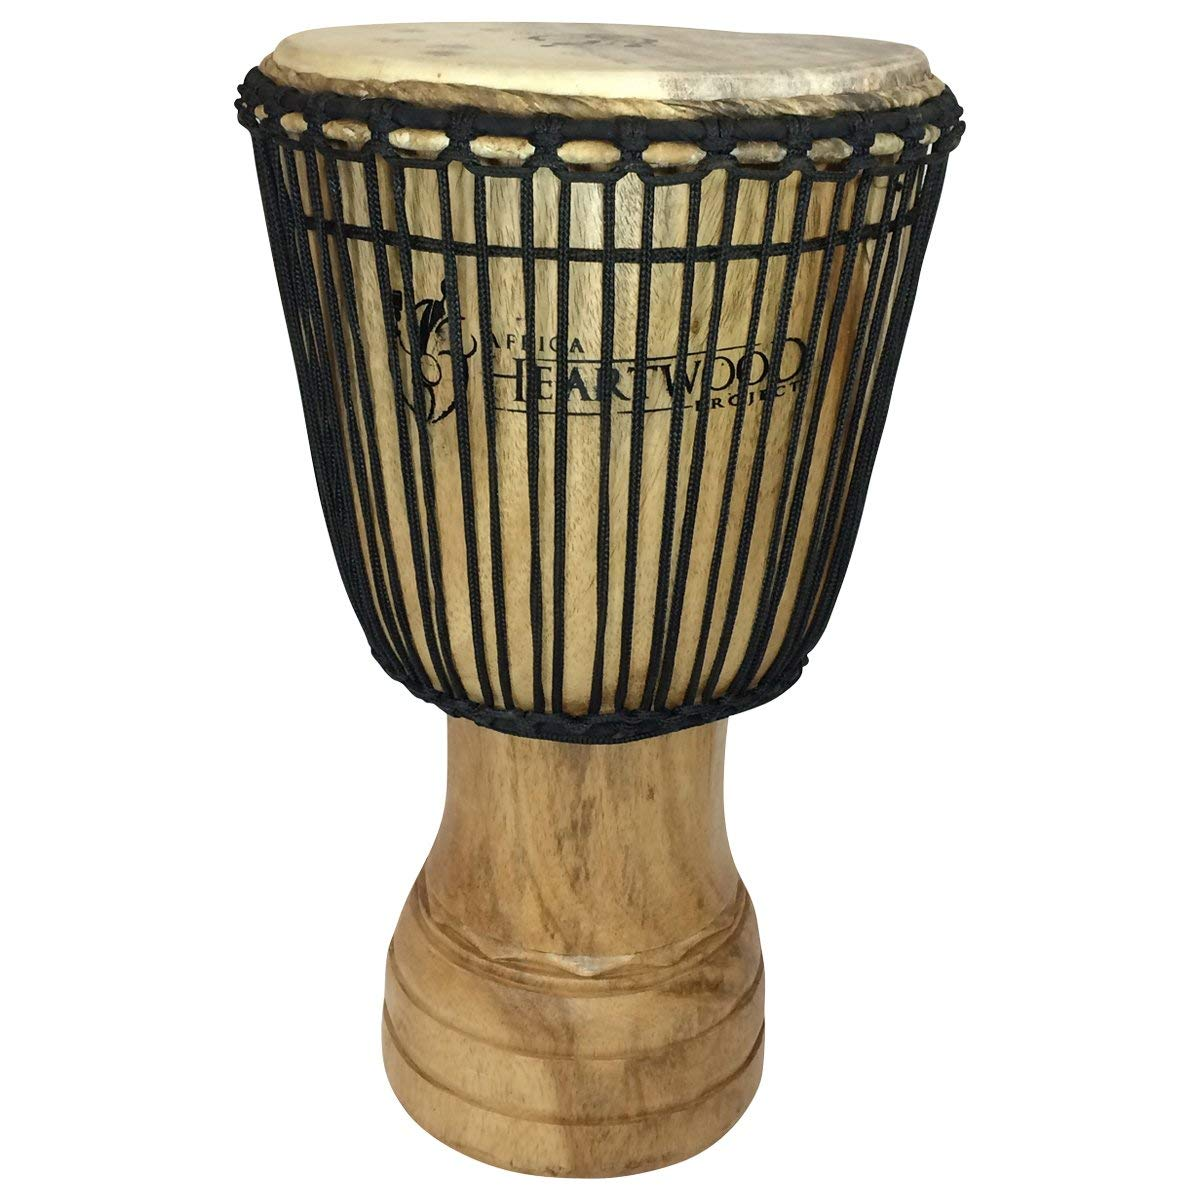 Hand-carved Djembe Drum From Africa - 13''x24'' Classic Ghana Djembe (Village Carving)